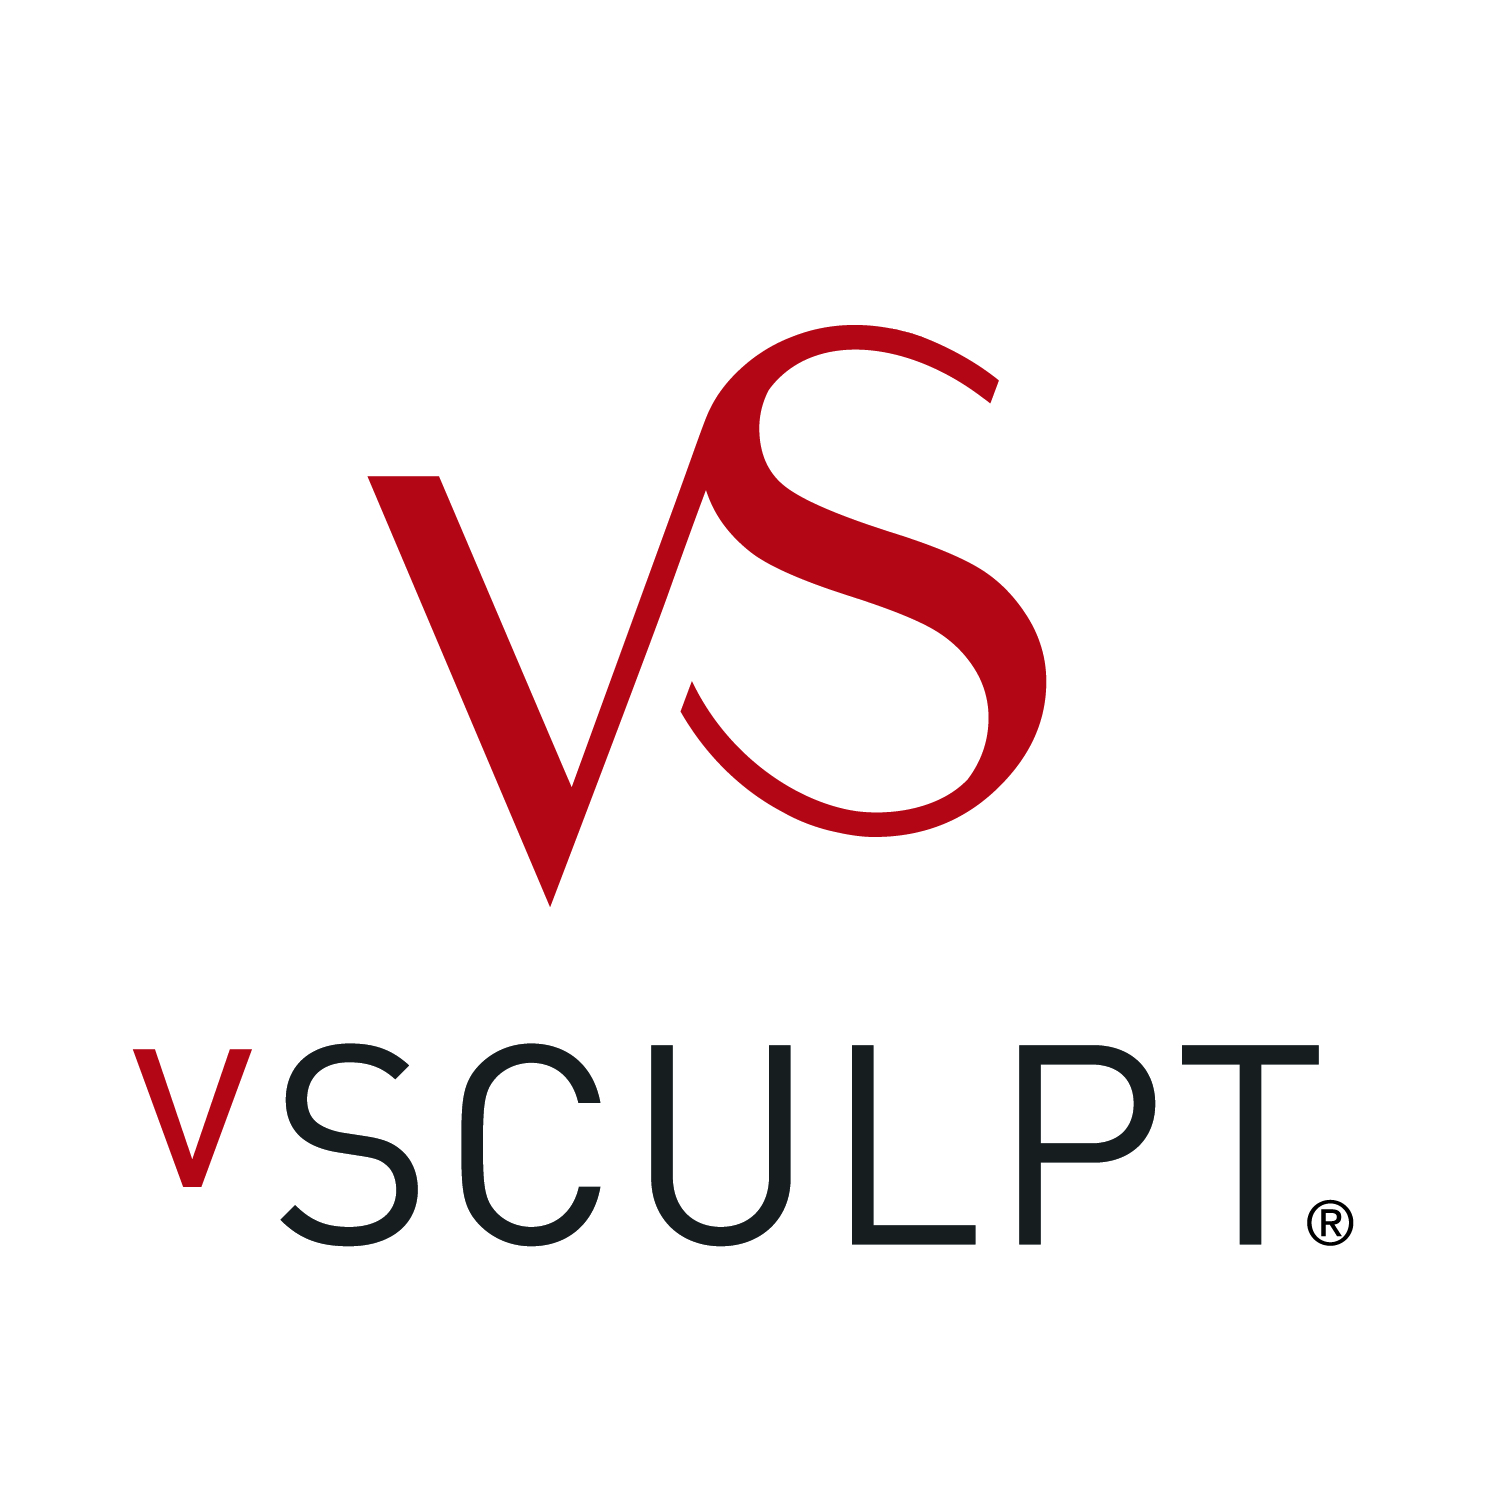 uk.vsculpt.com